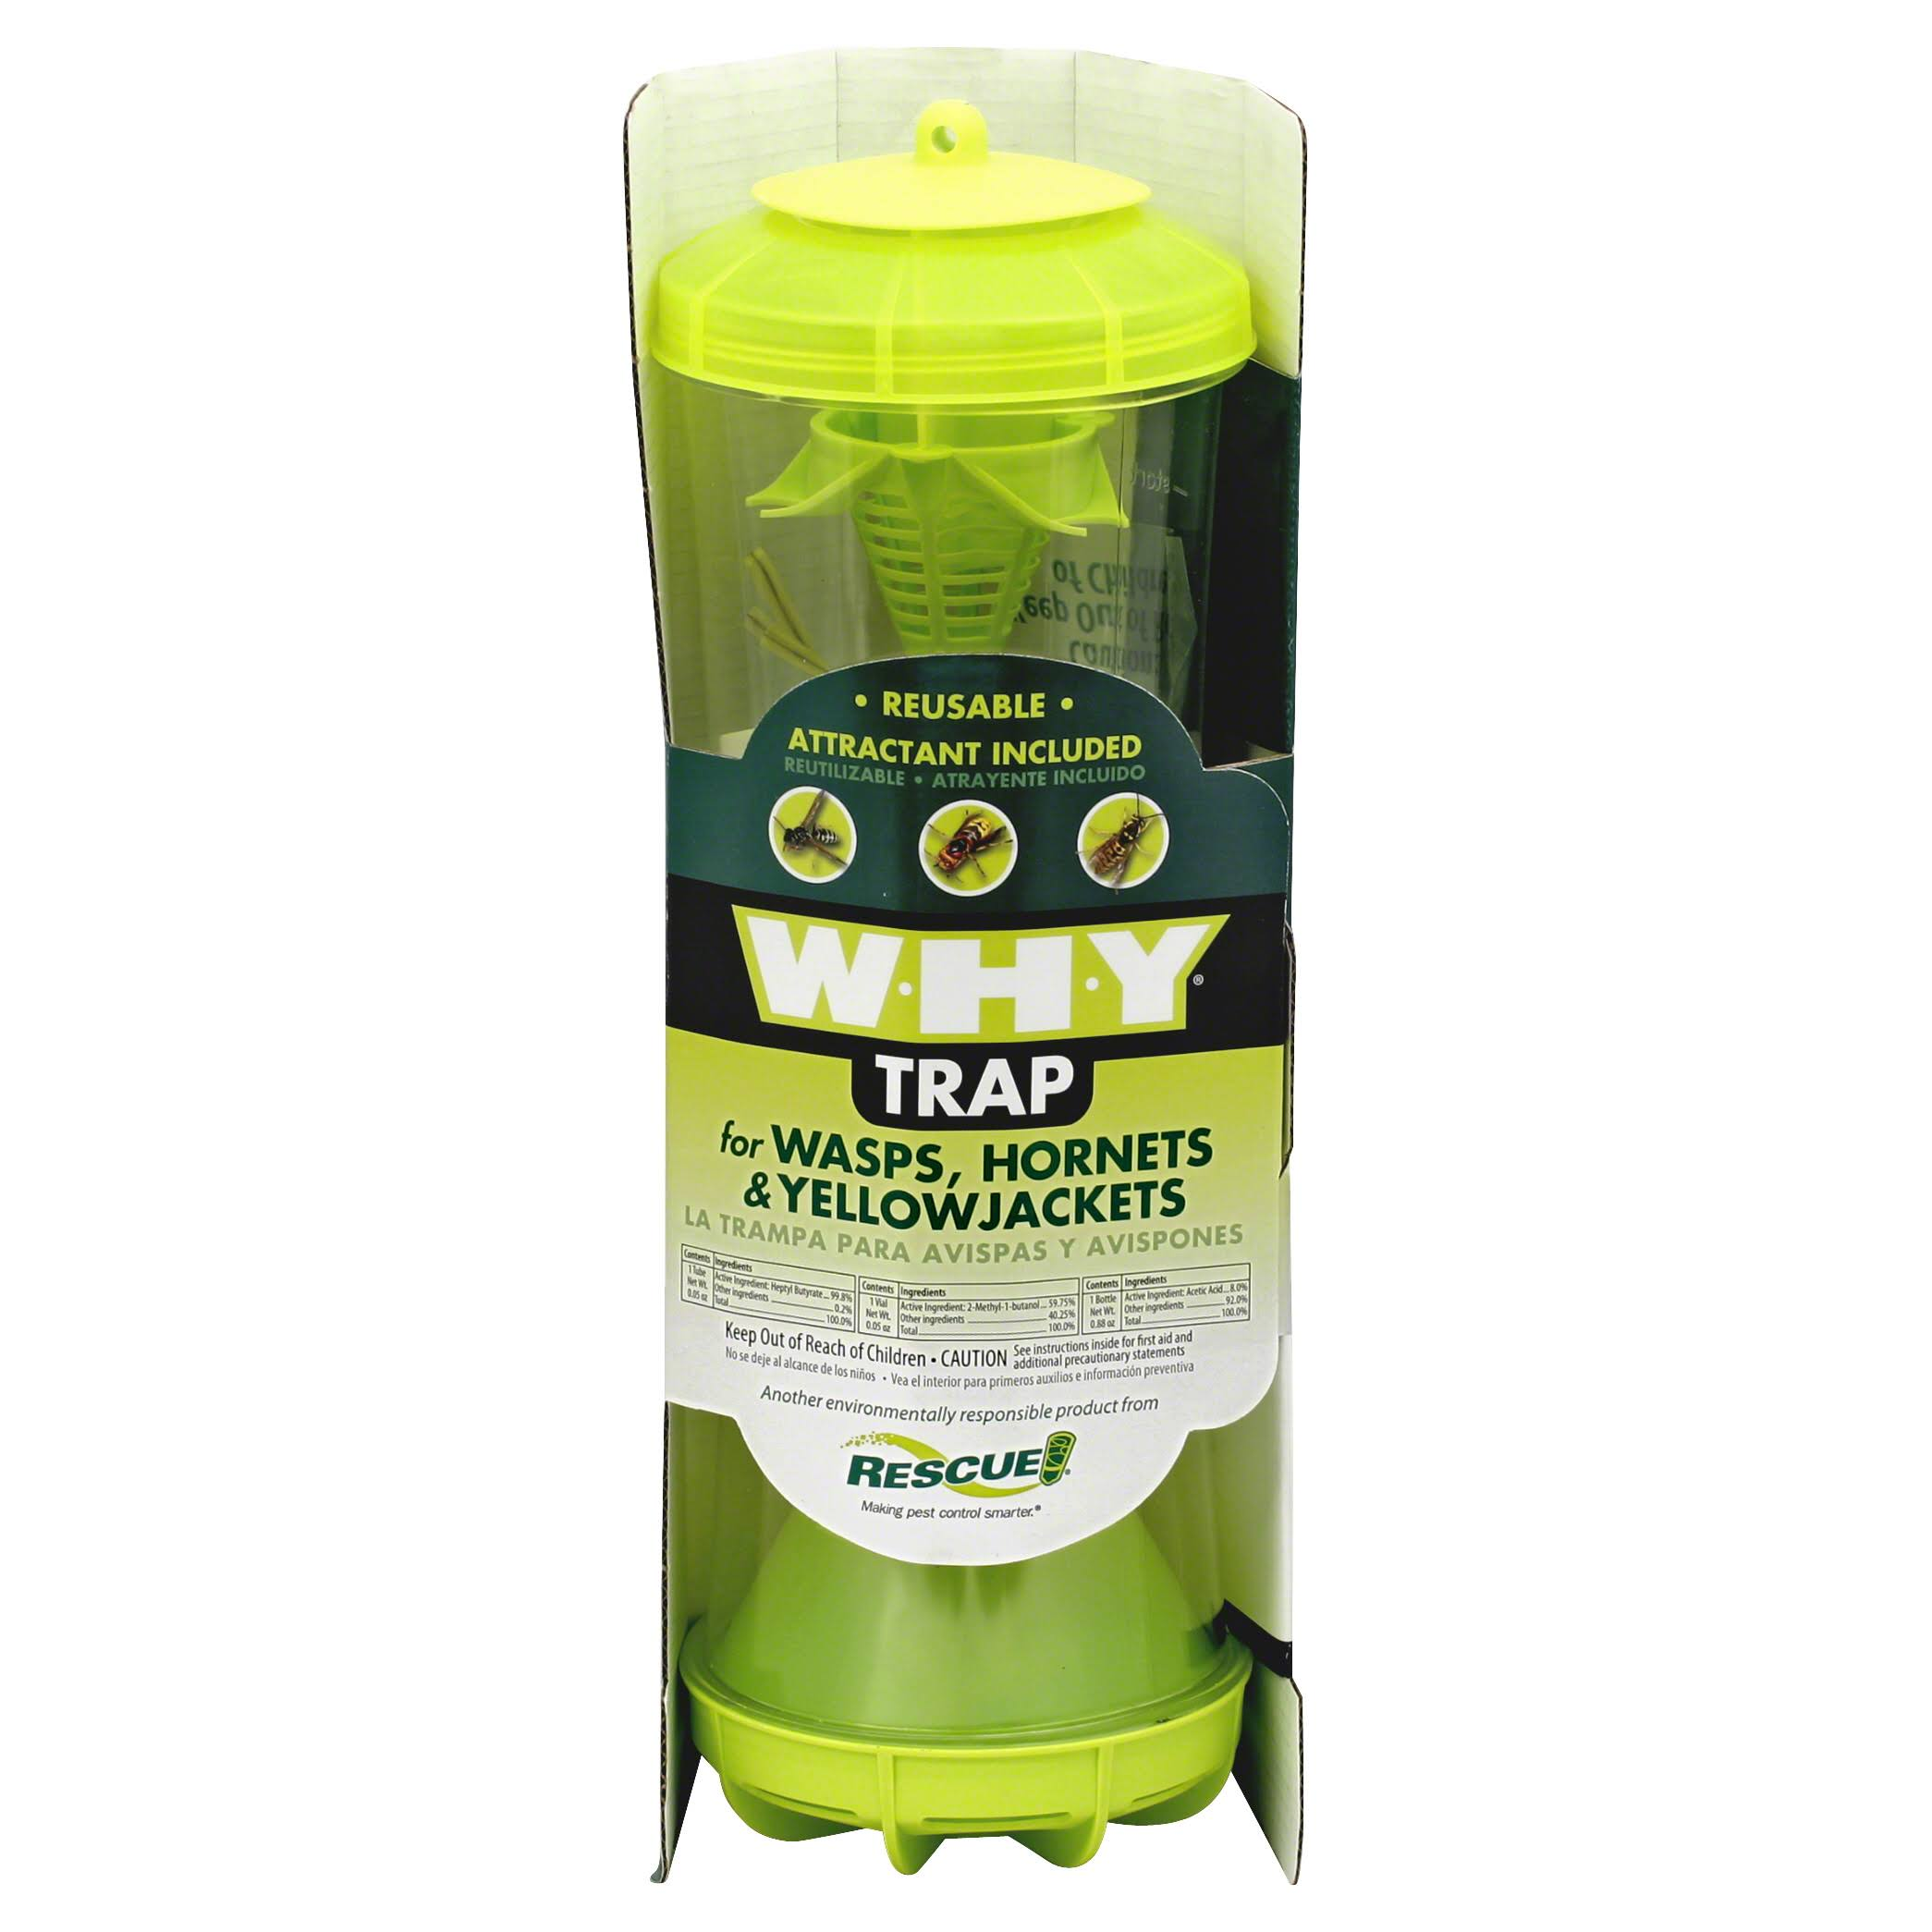 Rescue! Why Trap Non-Toxic Reusable Trap for Wasps, Hornets and Yellow Jackets